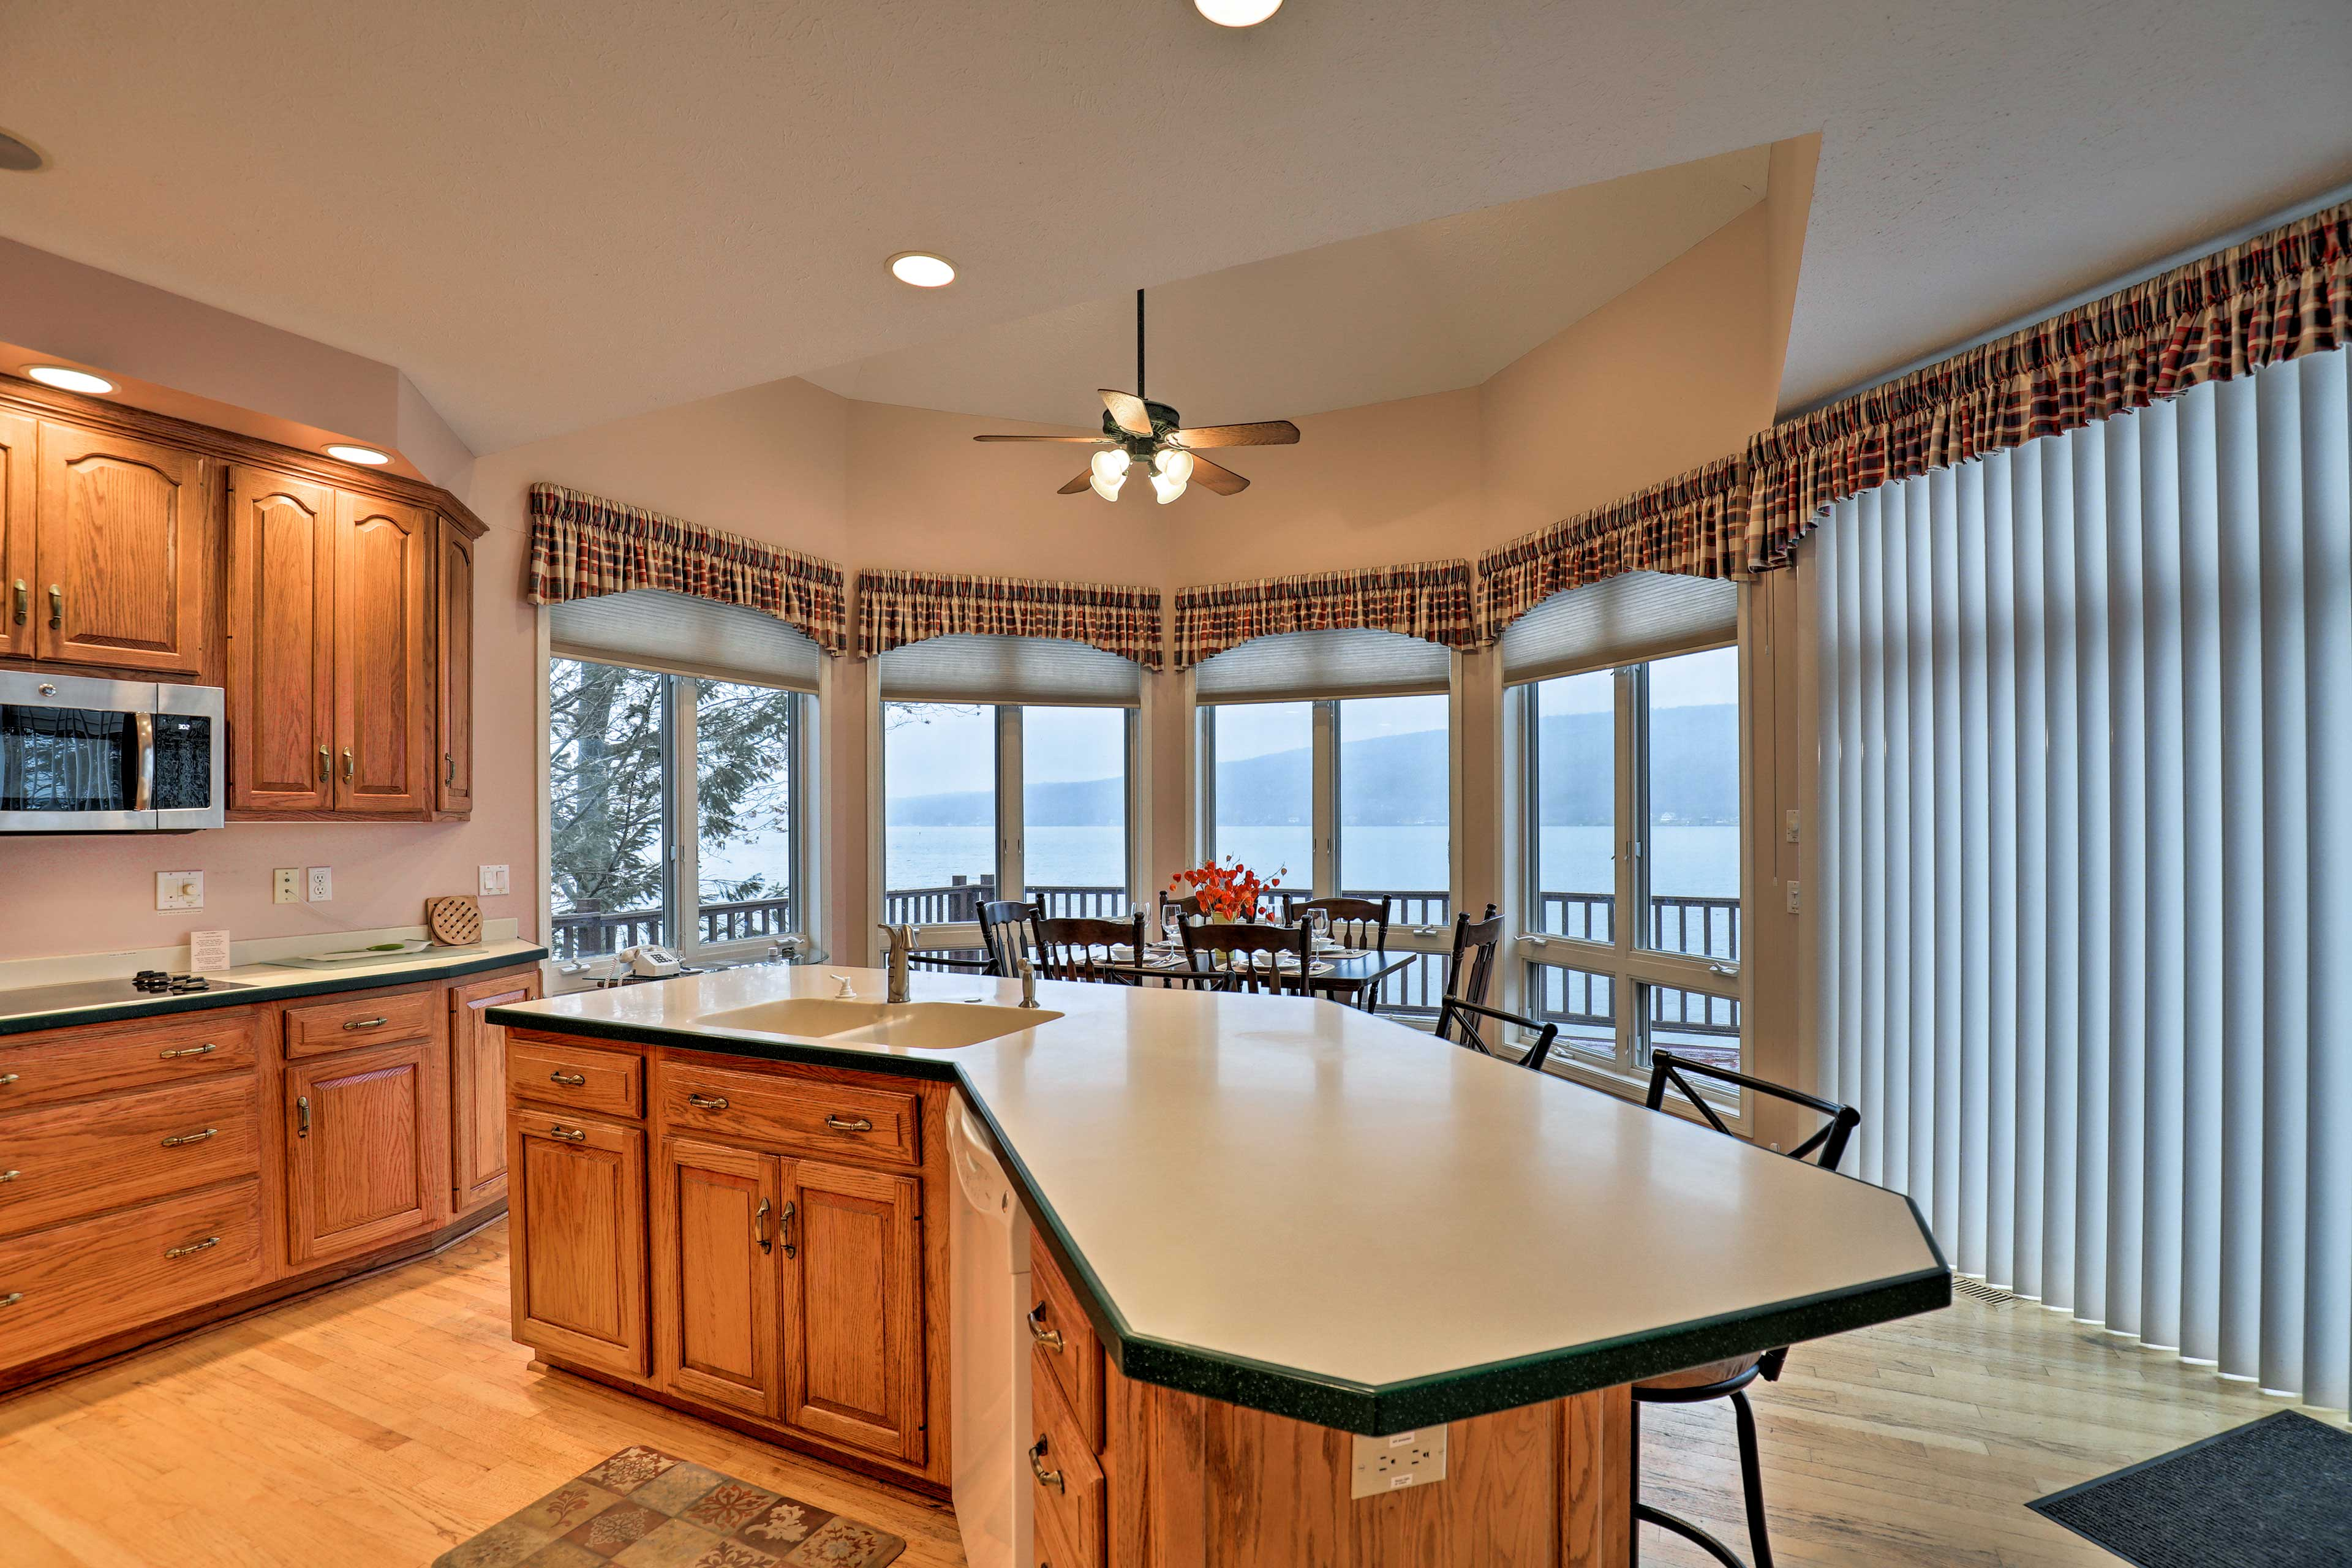 Ample counter space allows you to spread out while you prepare your meals.